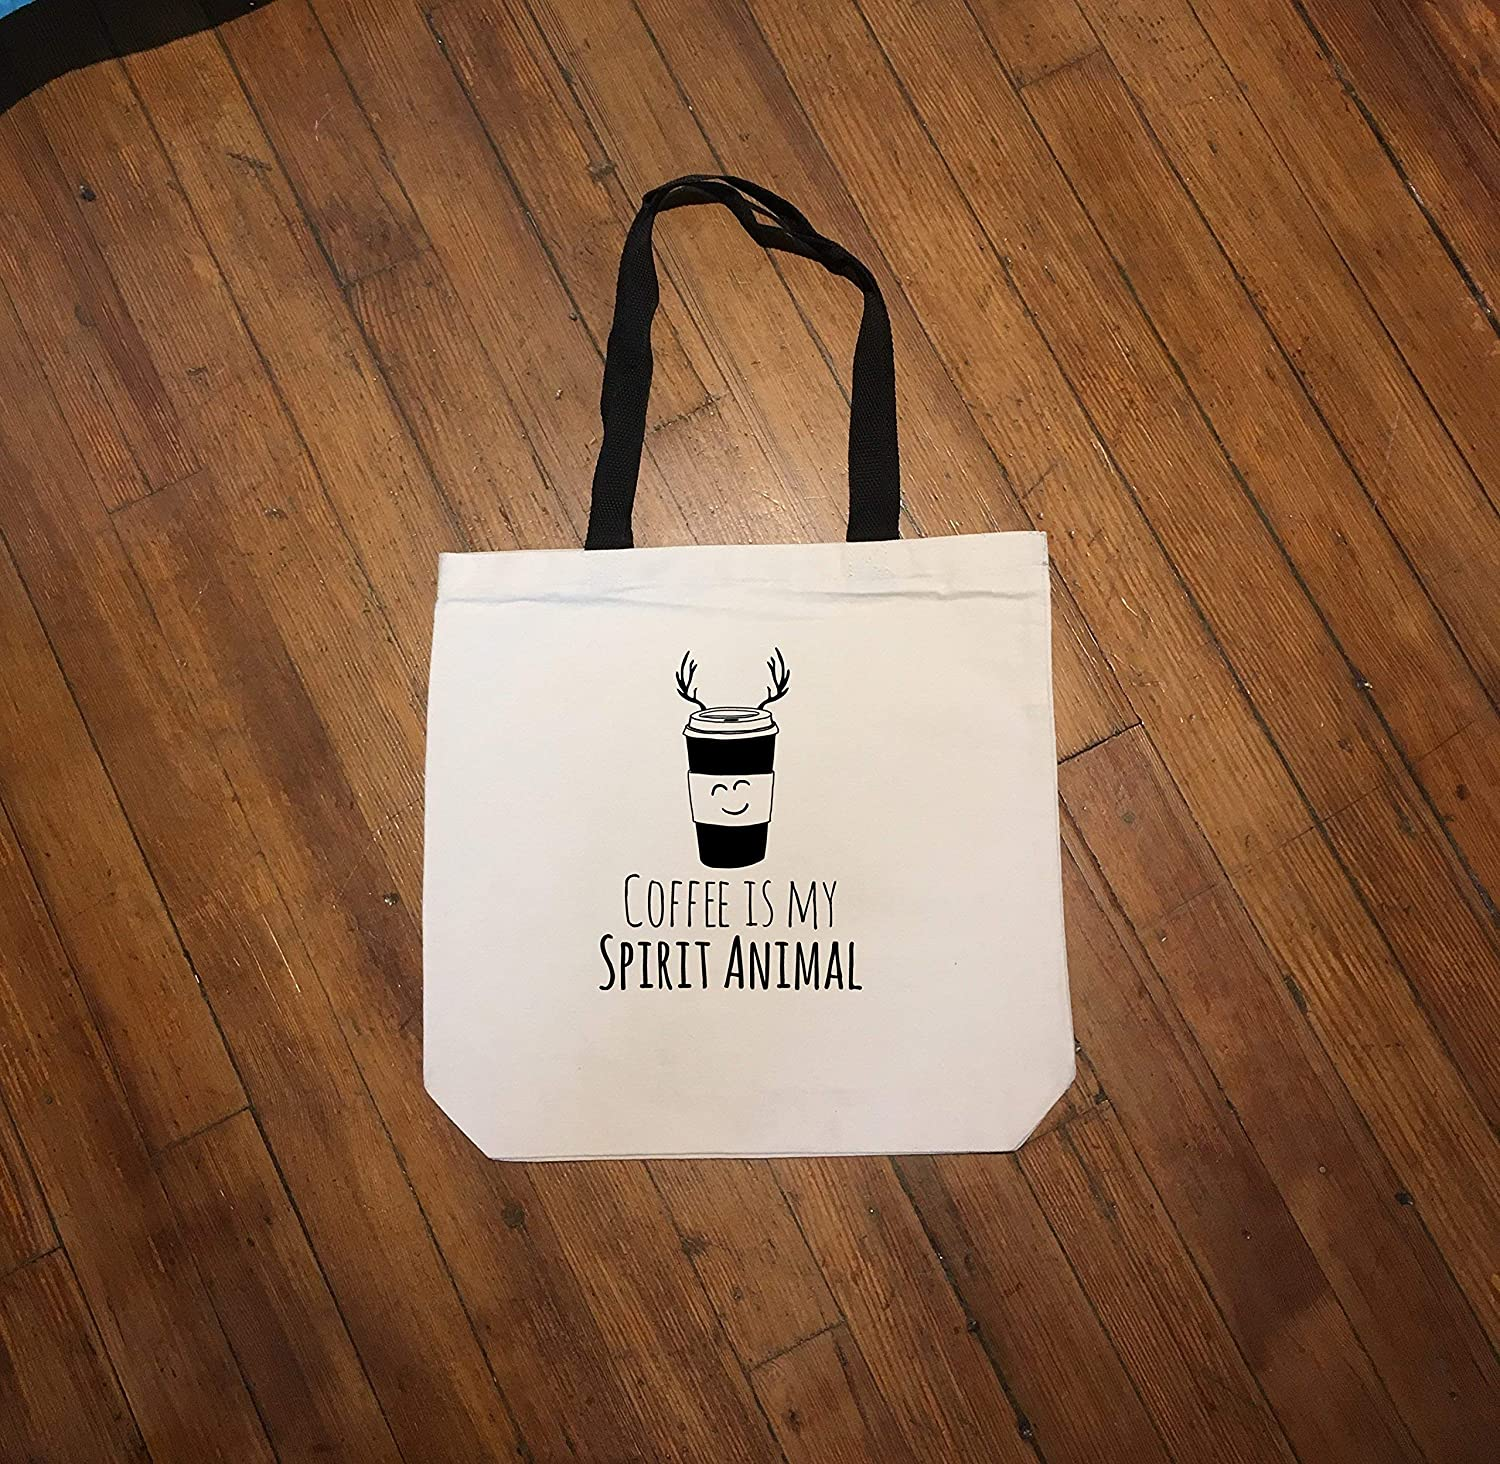 Coffee Is My Spirit Animal, Funny Natural Canvas Tote Bag